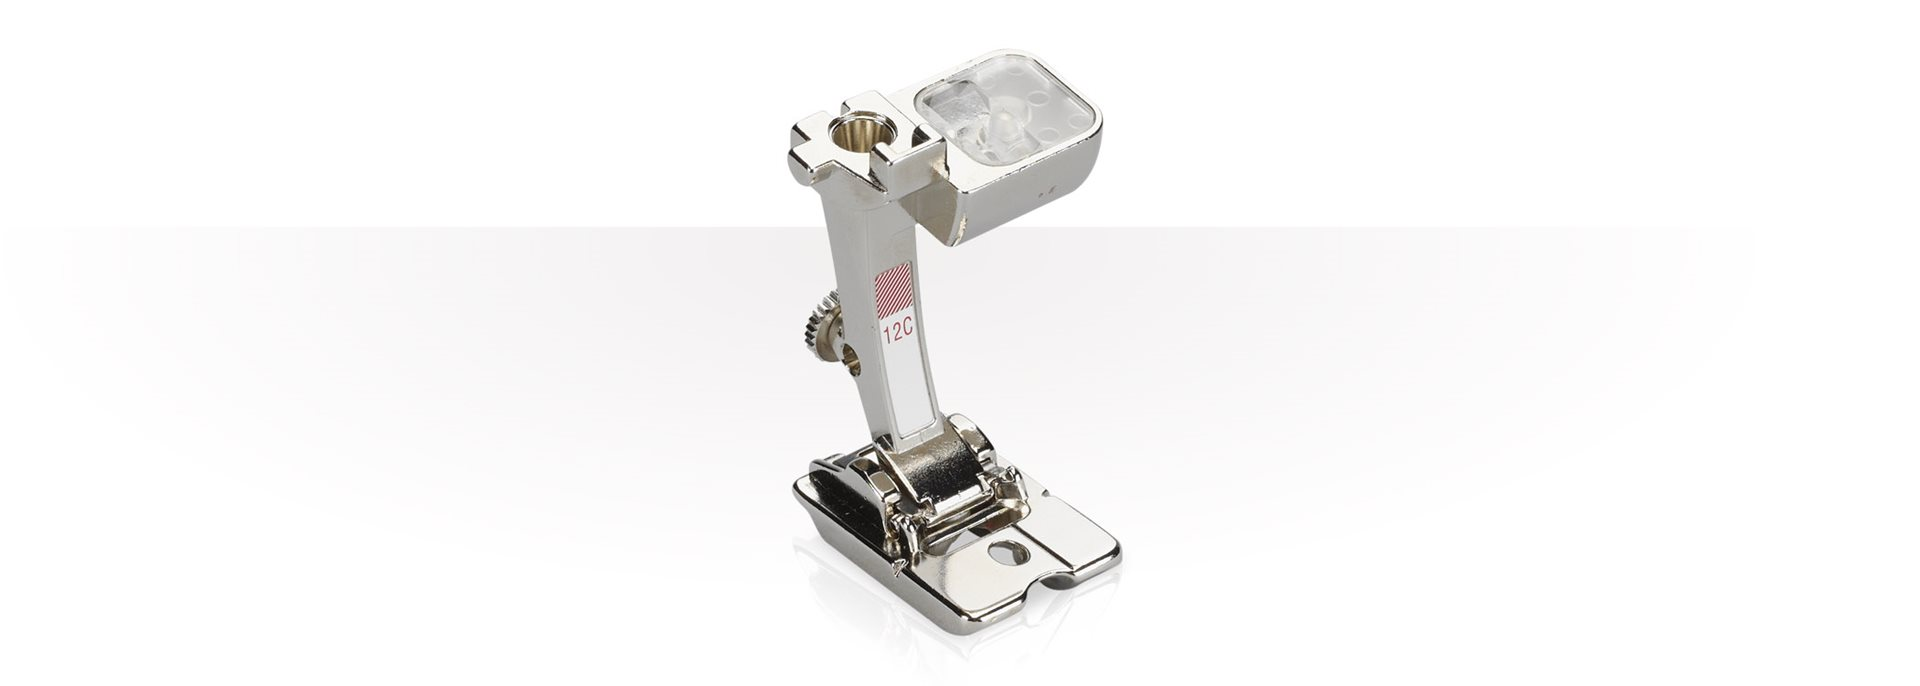 Picture: Bulky overlock foot # 12C